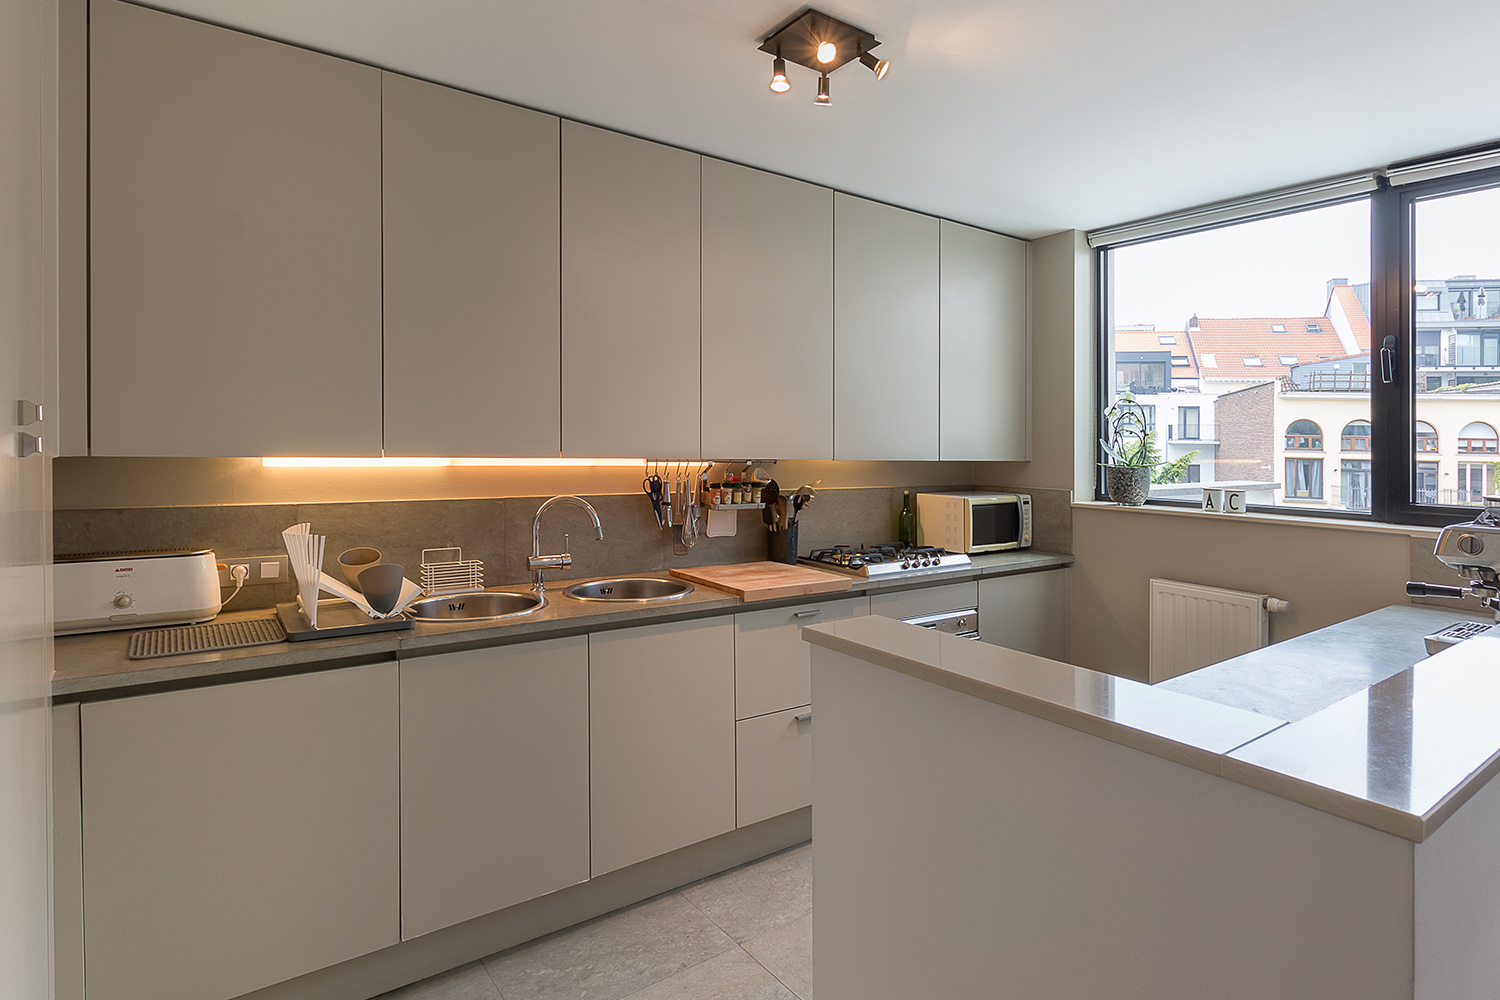 Kitchen - Real estate pro photographer Brussels